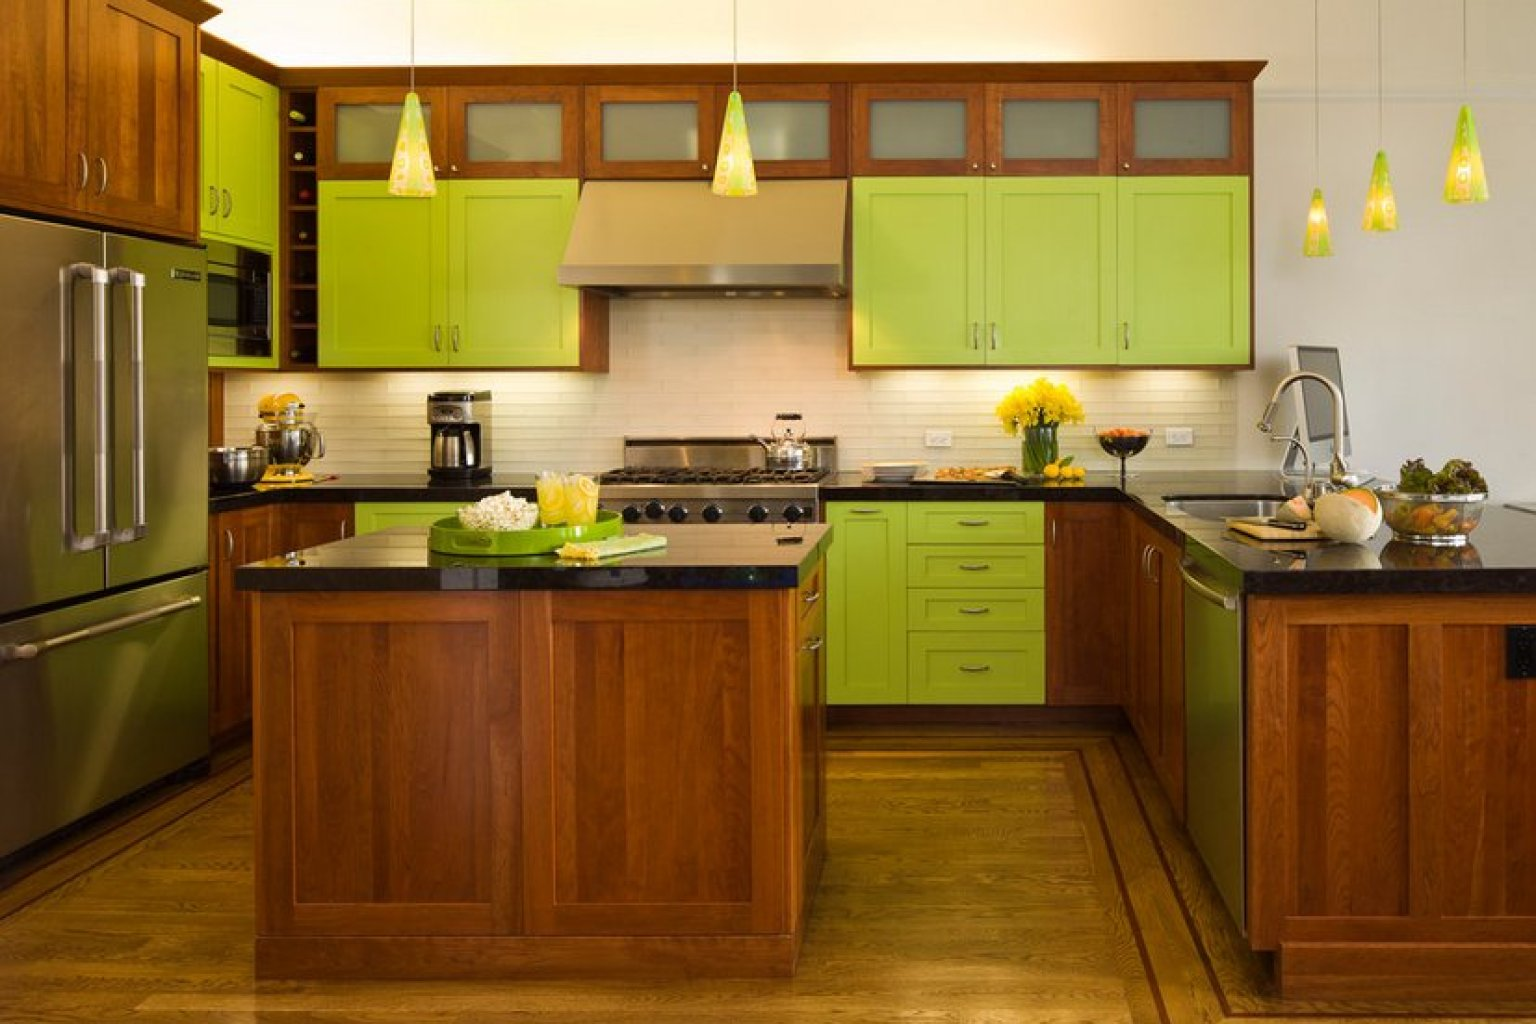 8 Good Reasons Why You Should Paint Everything Lime Green Photos Huffpost